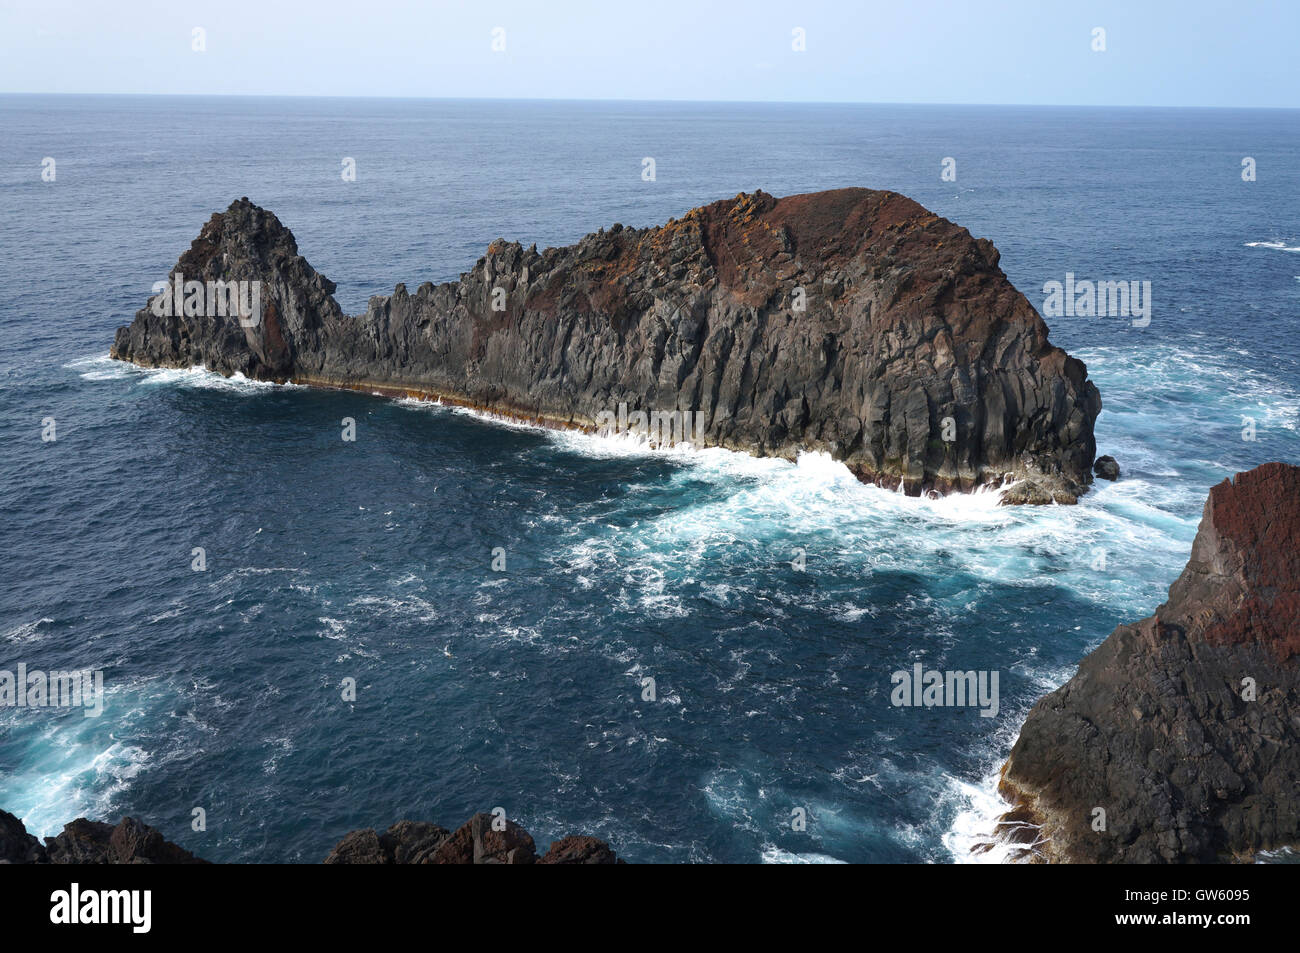 Whale rock or Baleia Islet at Ponta da Barca bay. Basaltic reddish rock with a whale configuration. Azores, Portugal - Stock Image